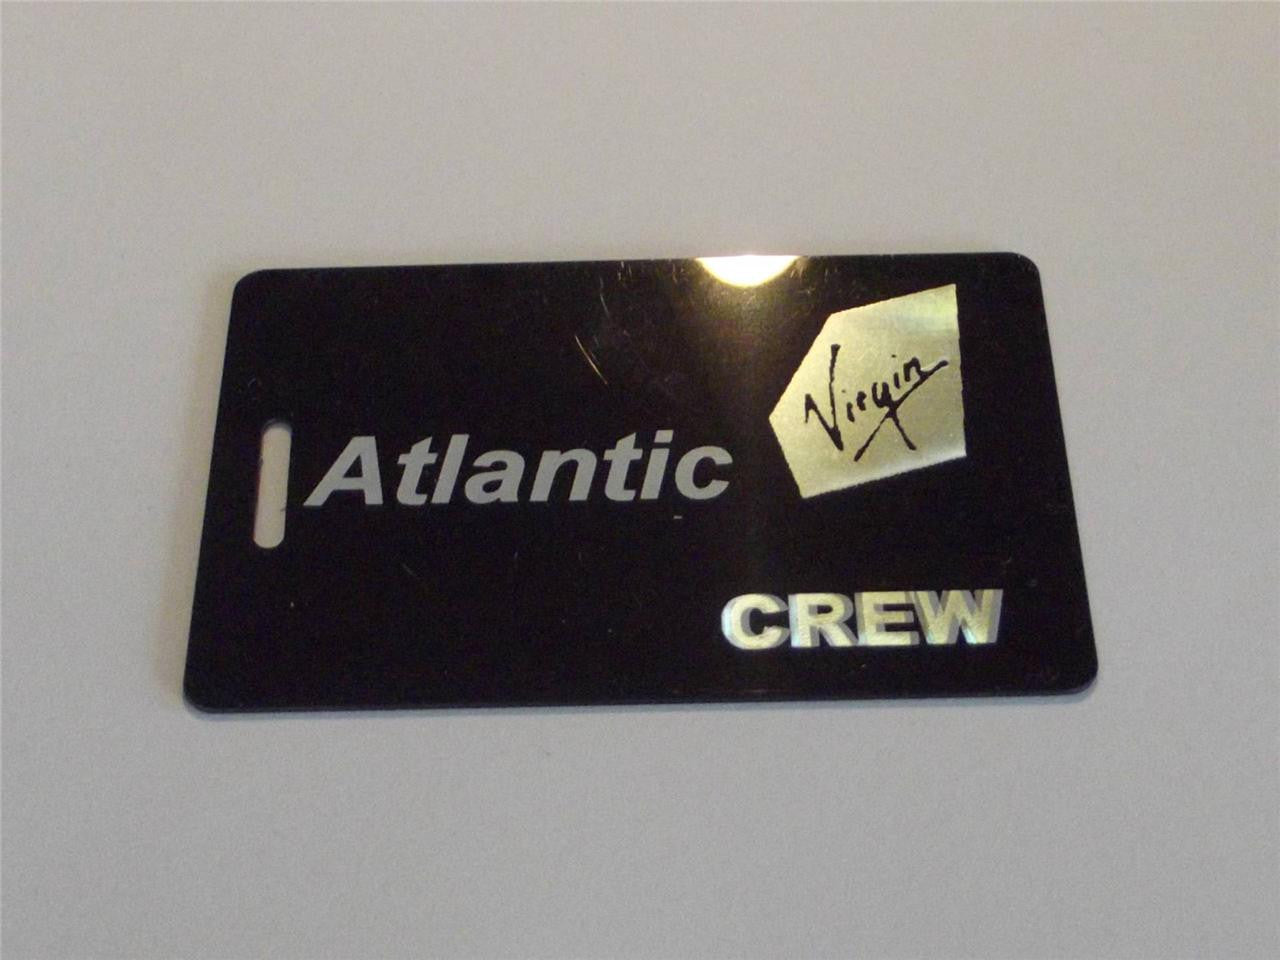 Novelty CREW LUGGAGE Tagg  VIRGIN AIR ATLANTIC Black  LOGO ( crew) -  Inflightgoods   - 2